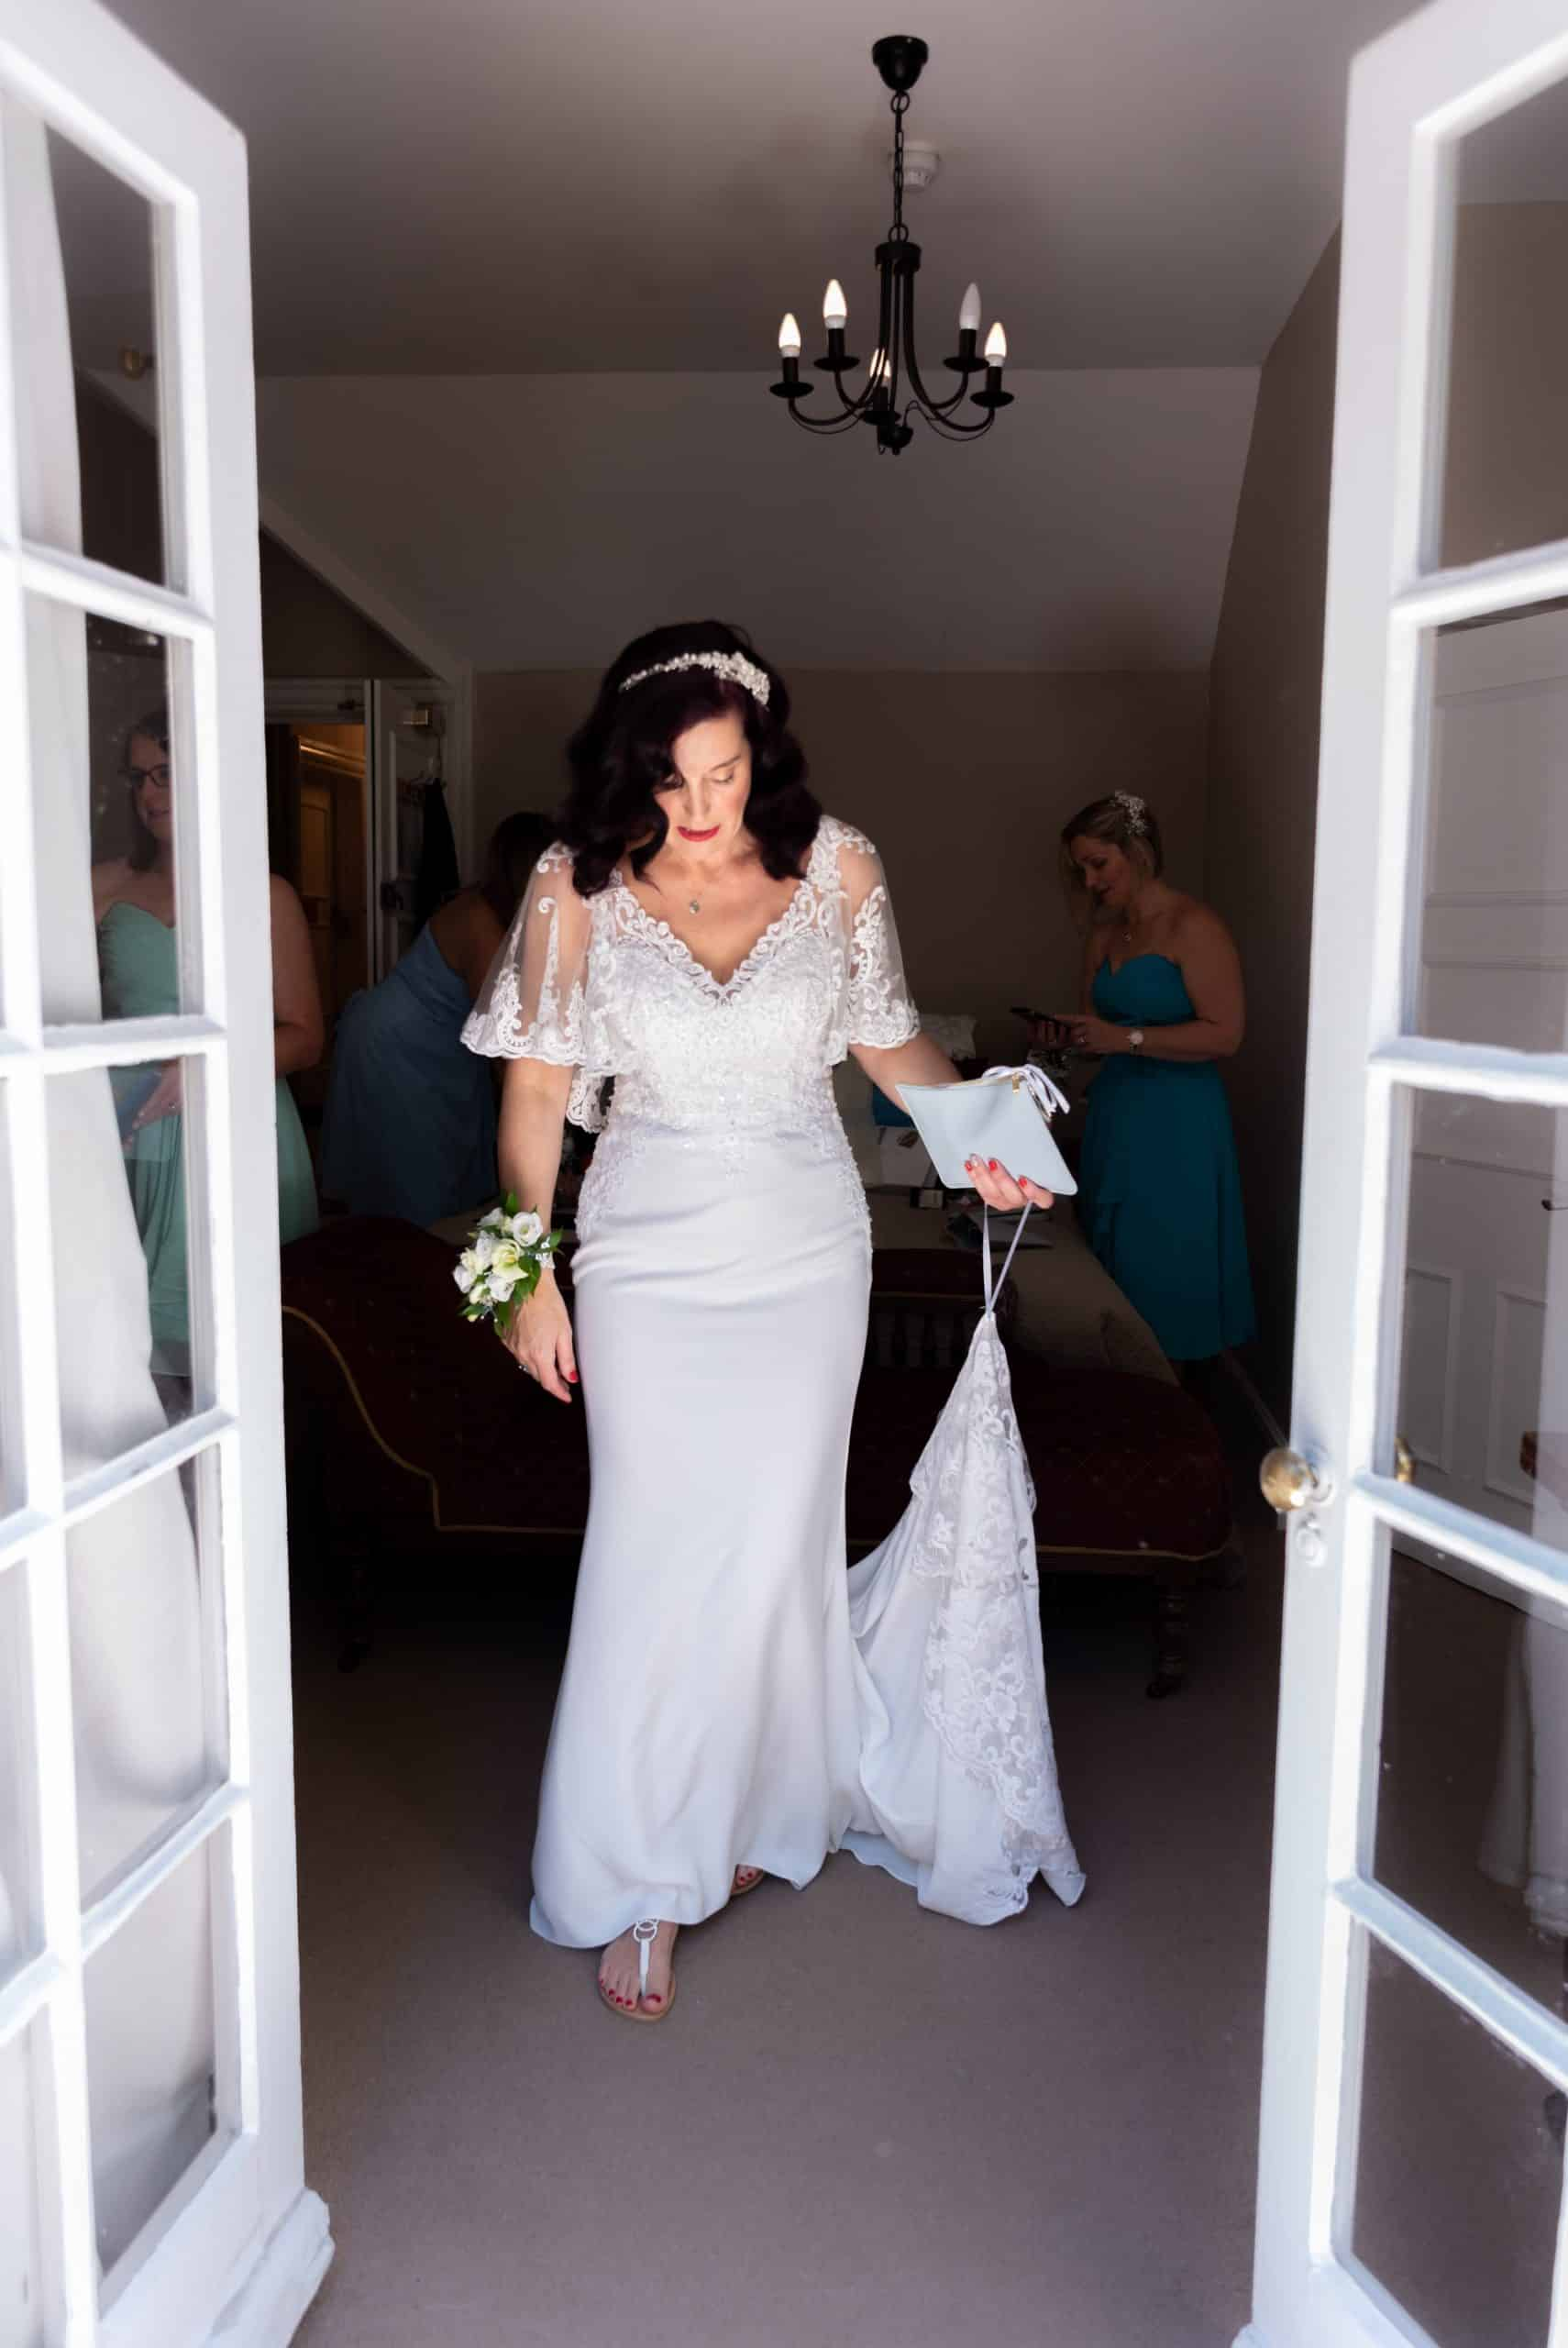 Portrait of bride standing by french doors looking down at hre wedding dress